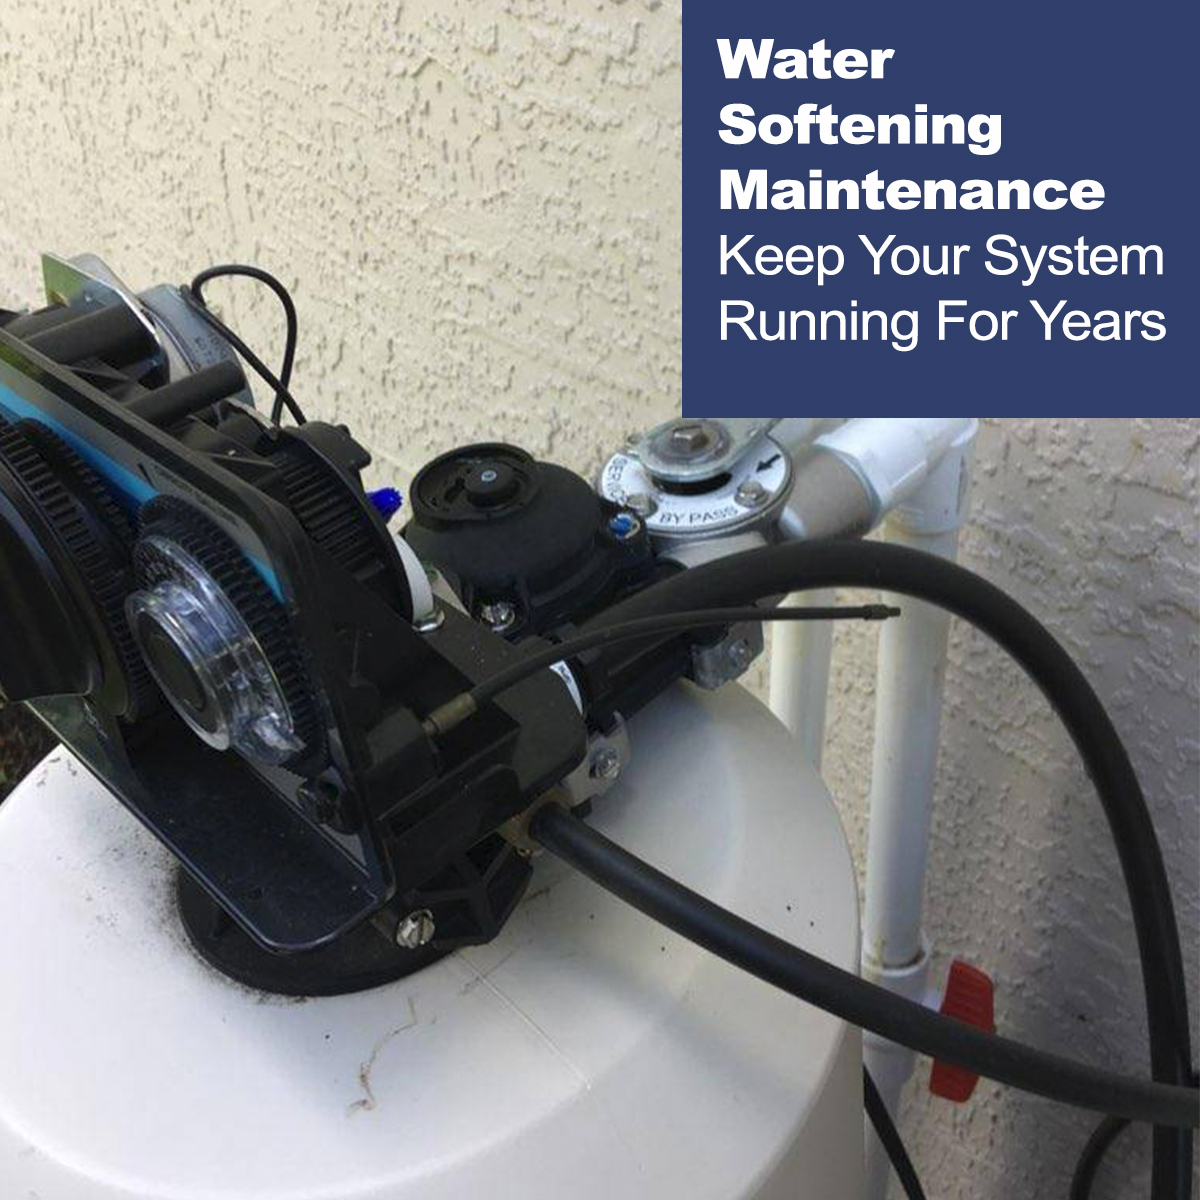 water softening maintenance